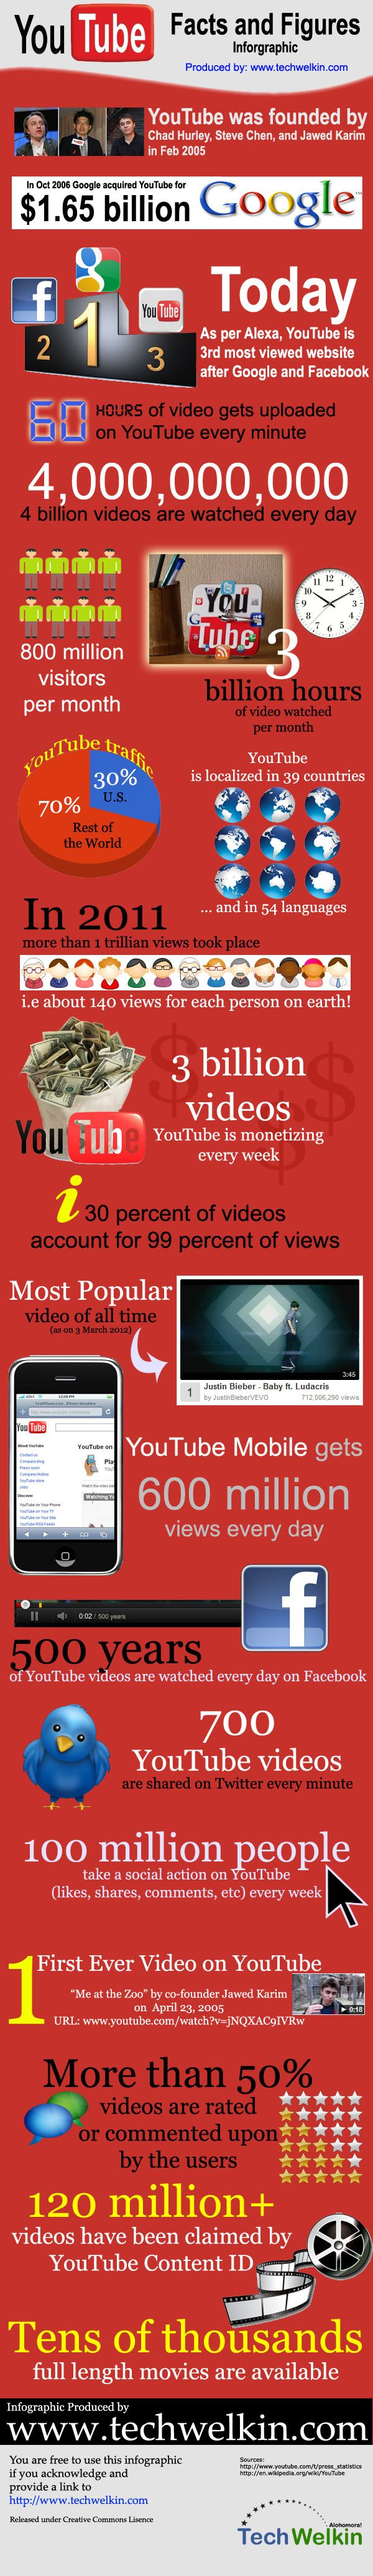 30 Mind Numbing YouTube Facts,Figures and Statistics - Infographic | Jeffbullas's Blog